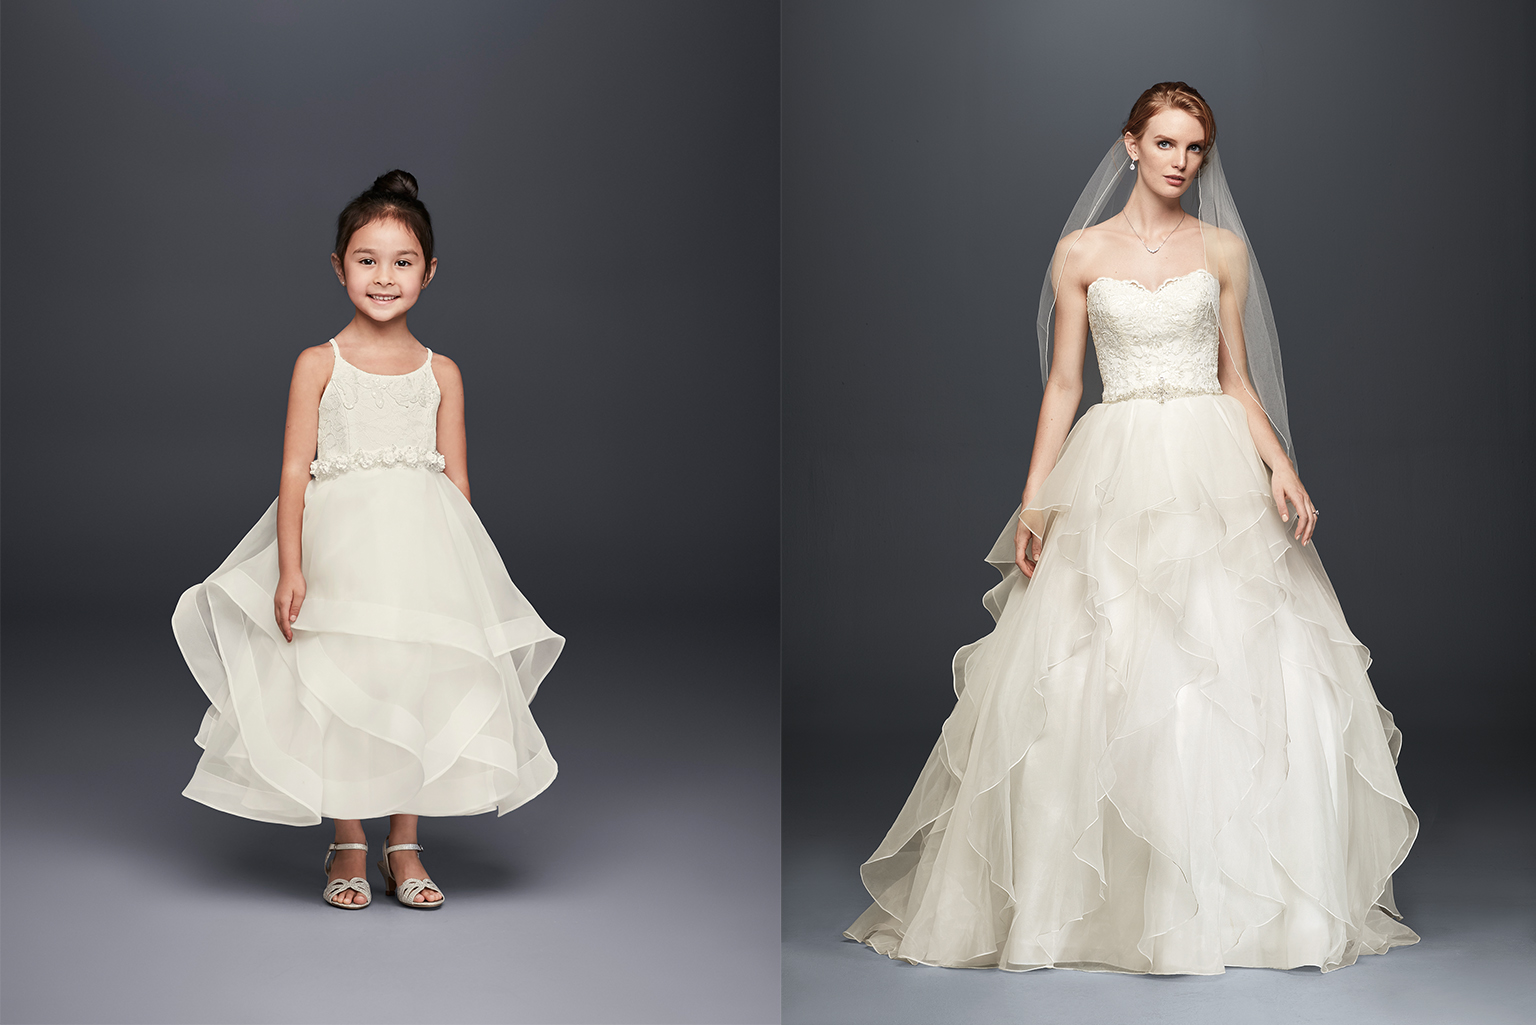 Ruffle Flower Girl and Bridal Gown